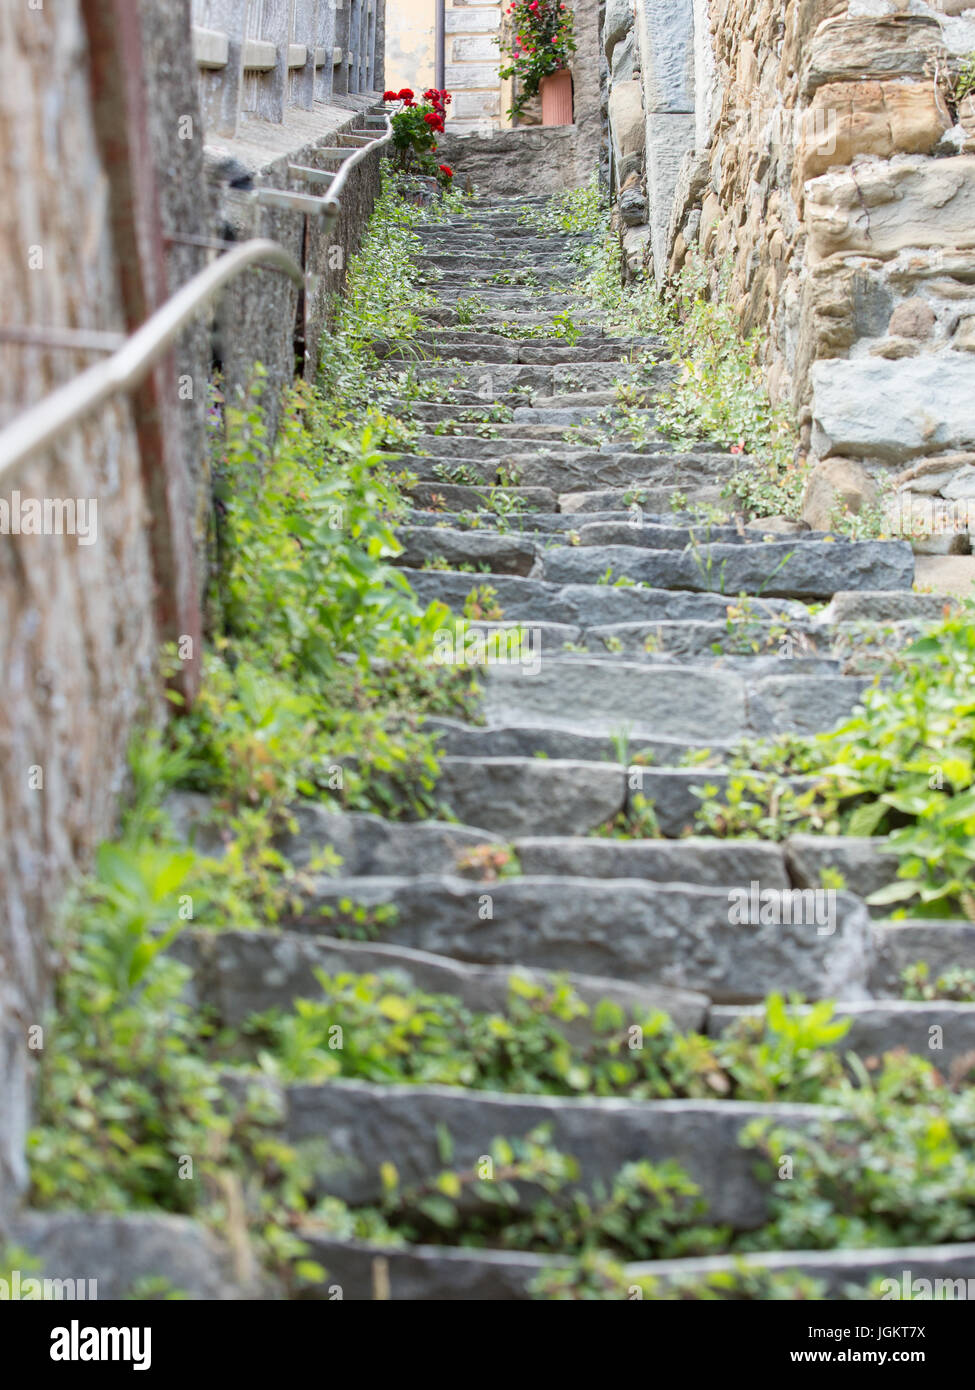 old stone steps of Riomaggiore, Italy - Stock Image